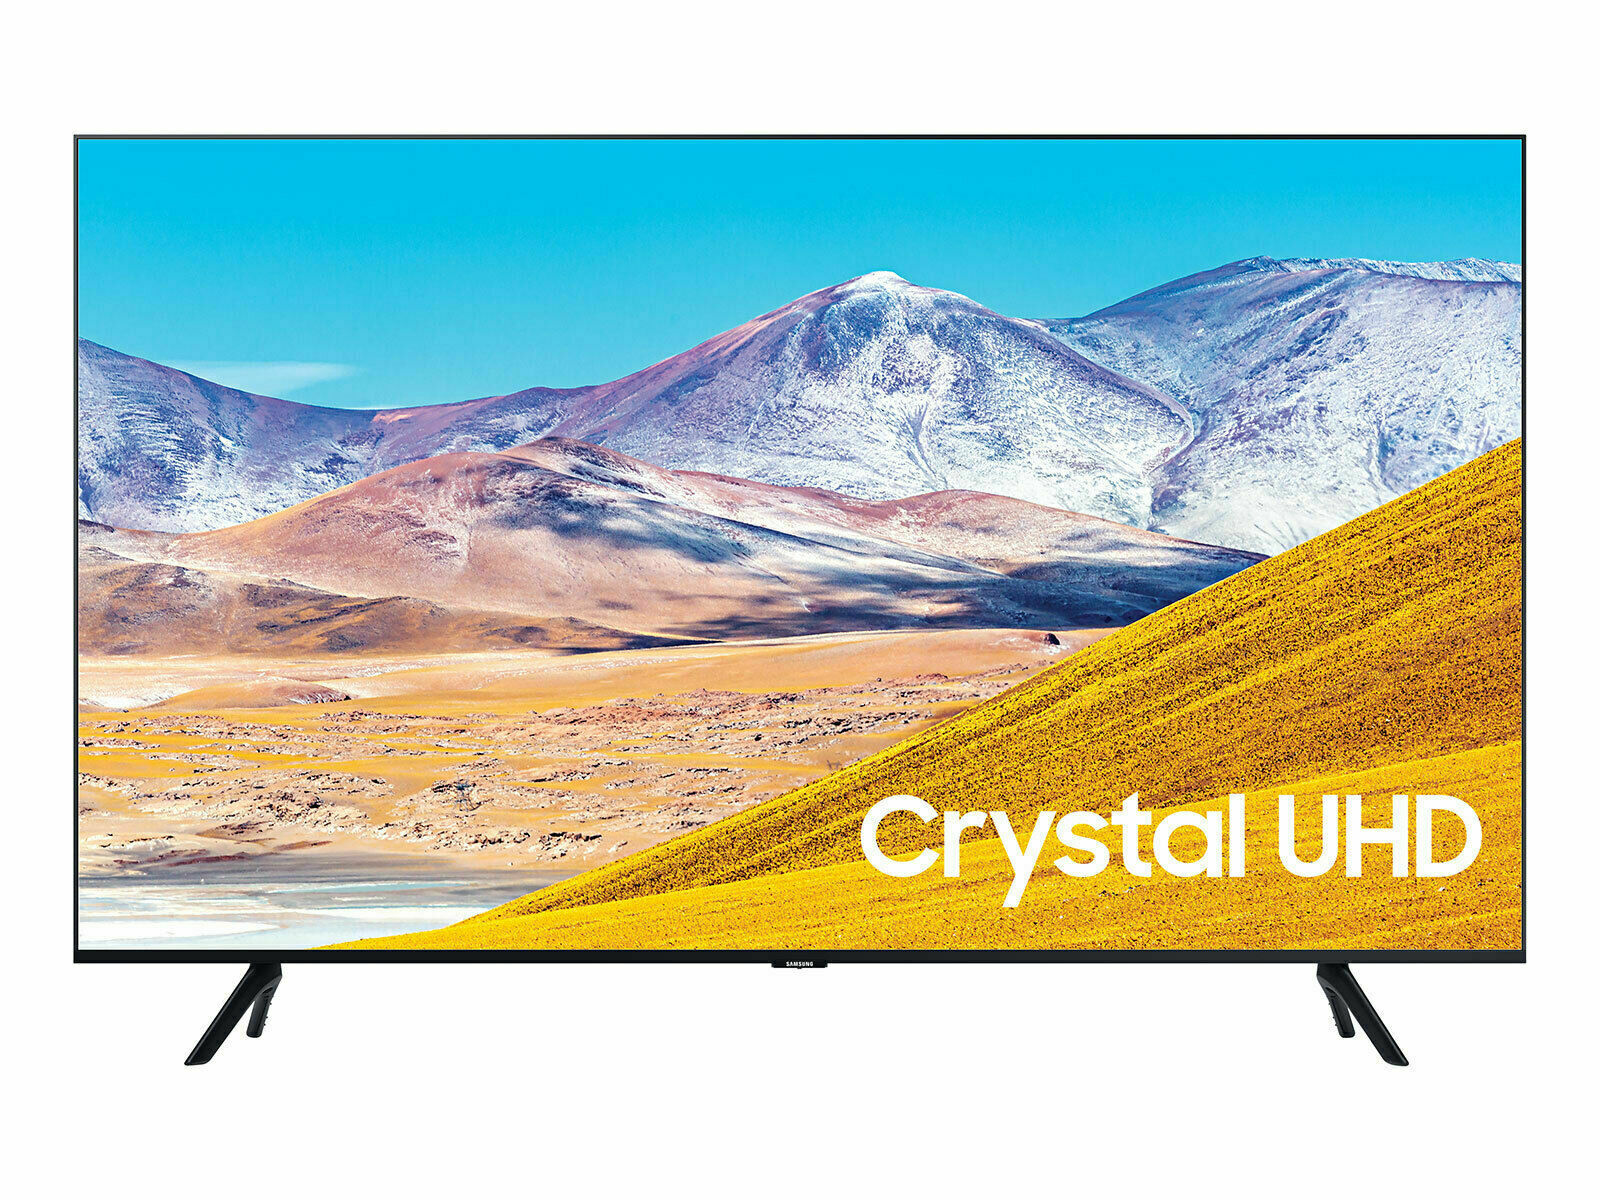 SAMSUNG TU-8000 65  8 Series Crystal UHD 4K HDR Smart TV - 3 HDMI. Available Now for 747.90